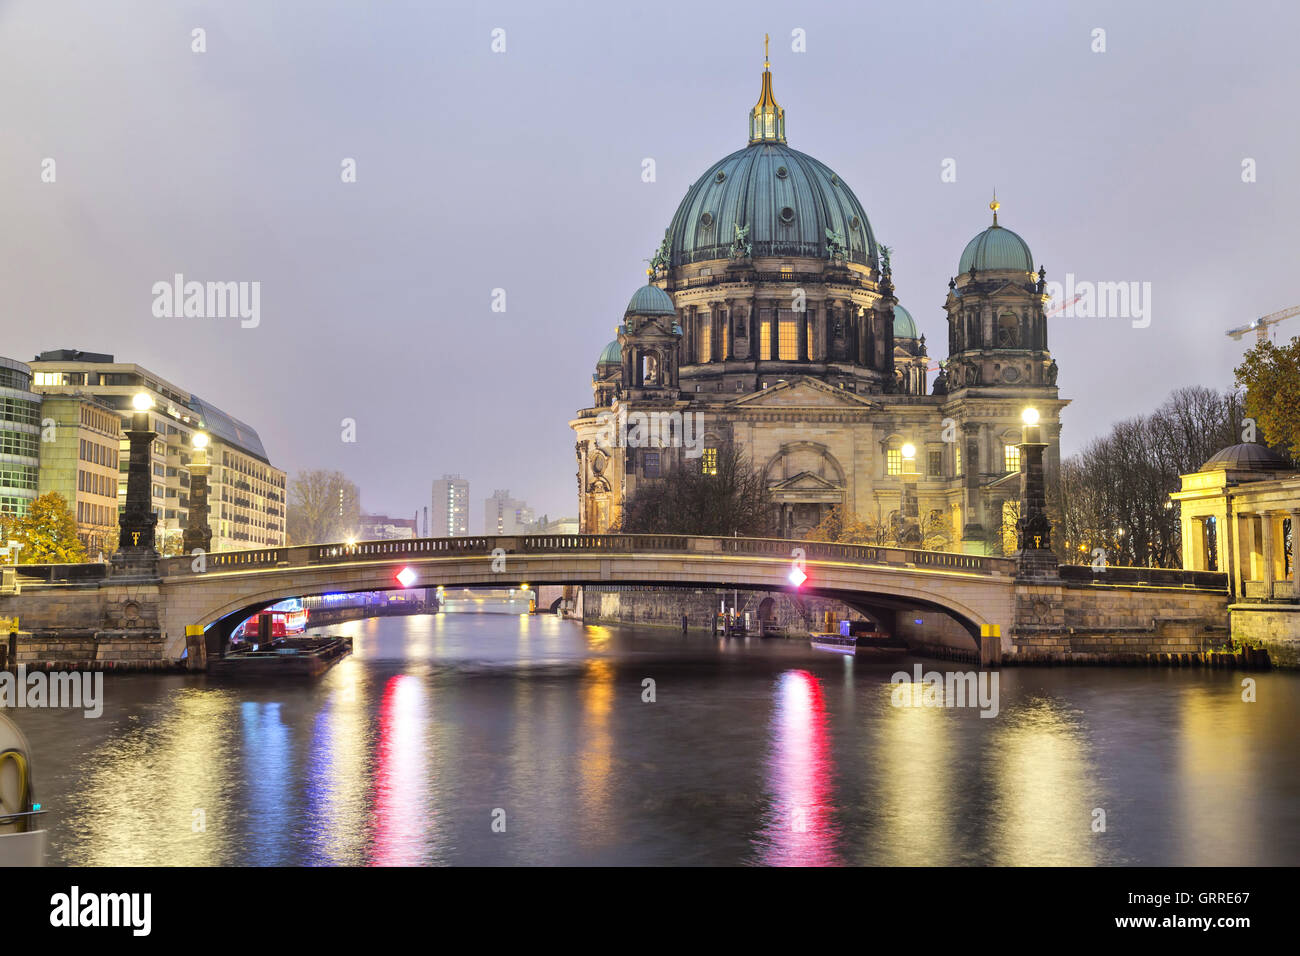 Berlin Cathedral (Berliner Dom) and the bridge across the Spree River, Germany - Stock Image